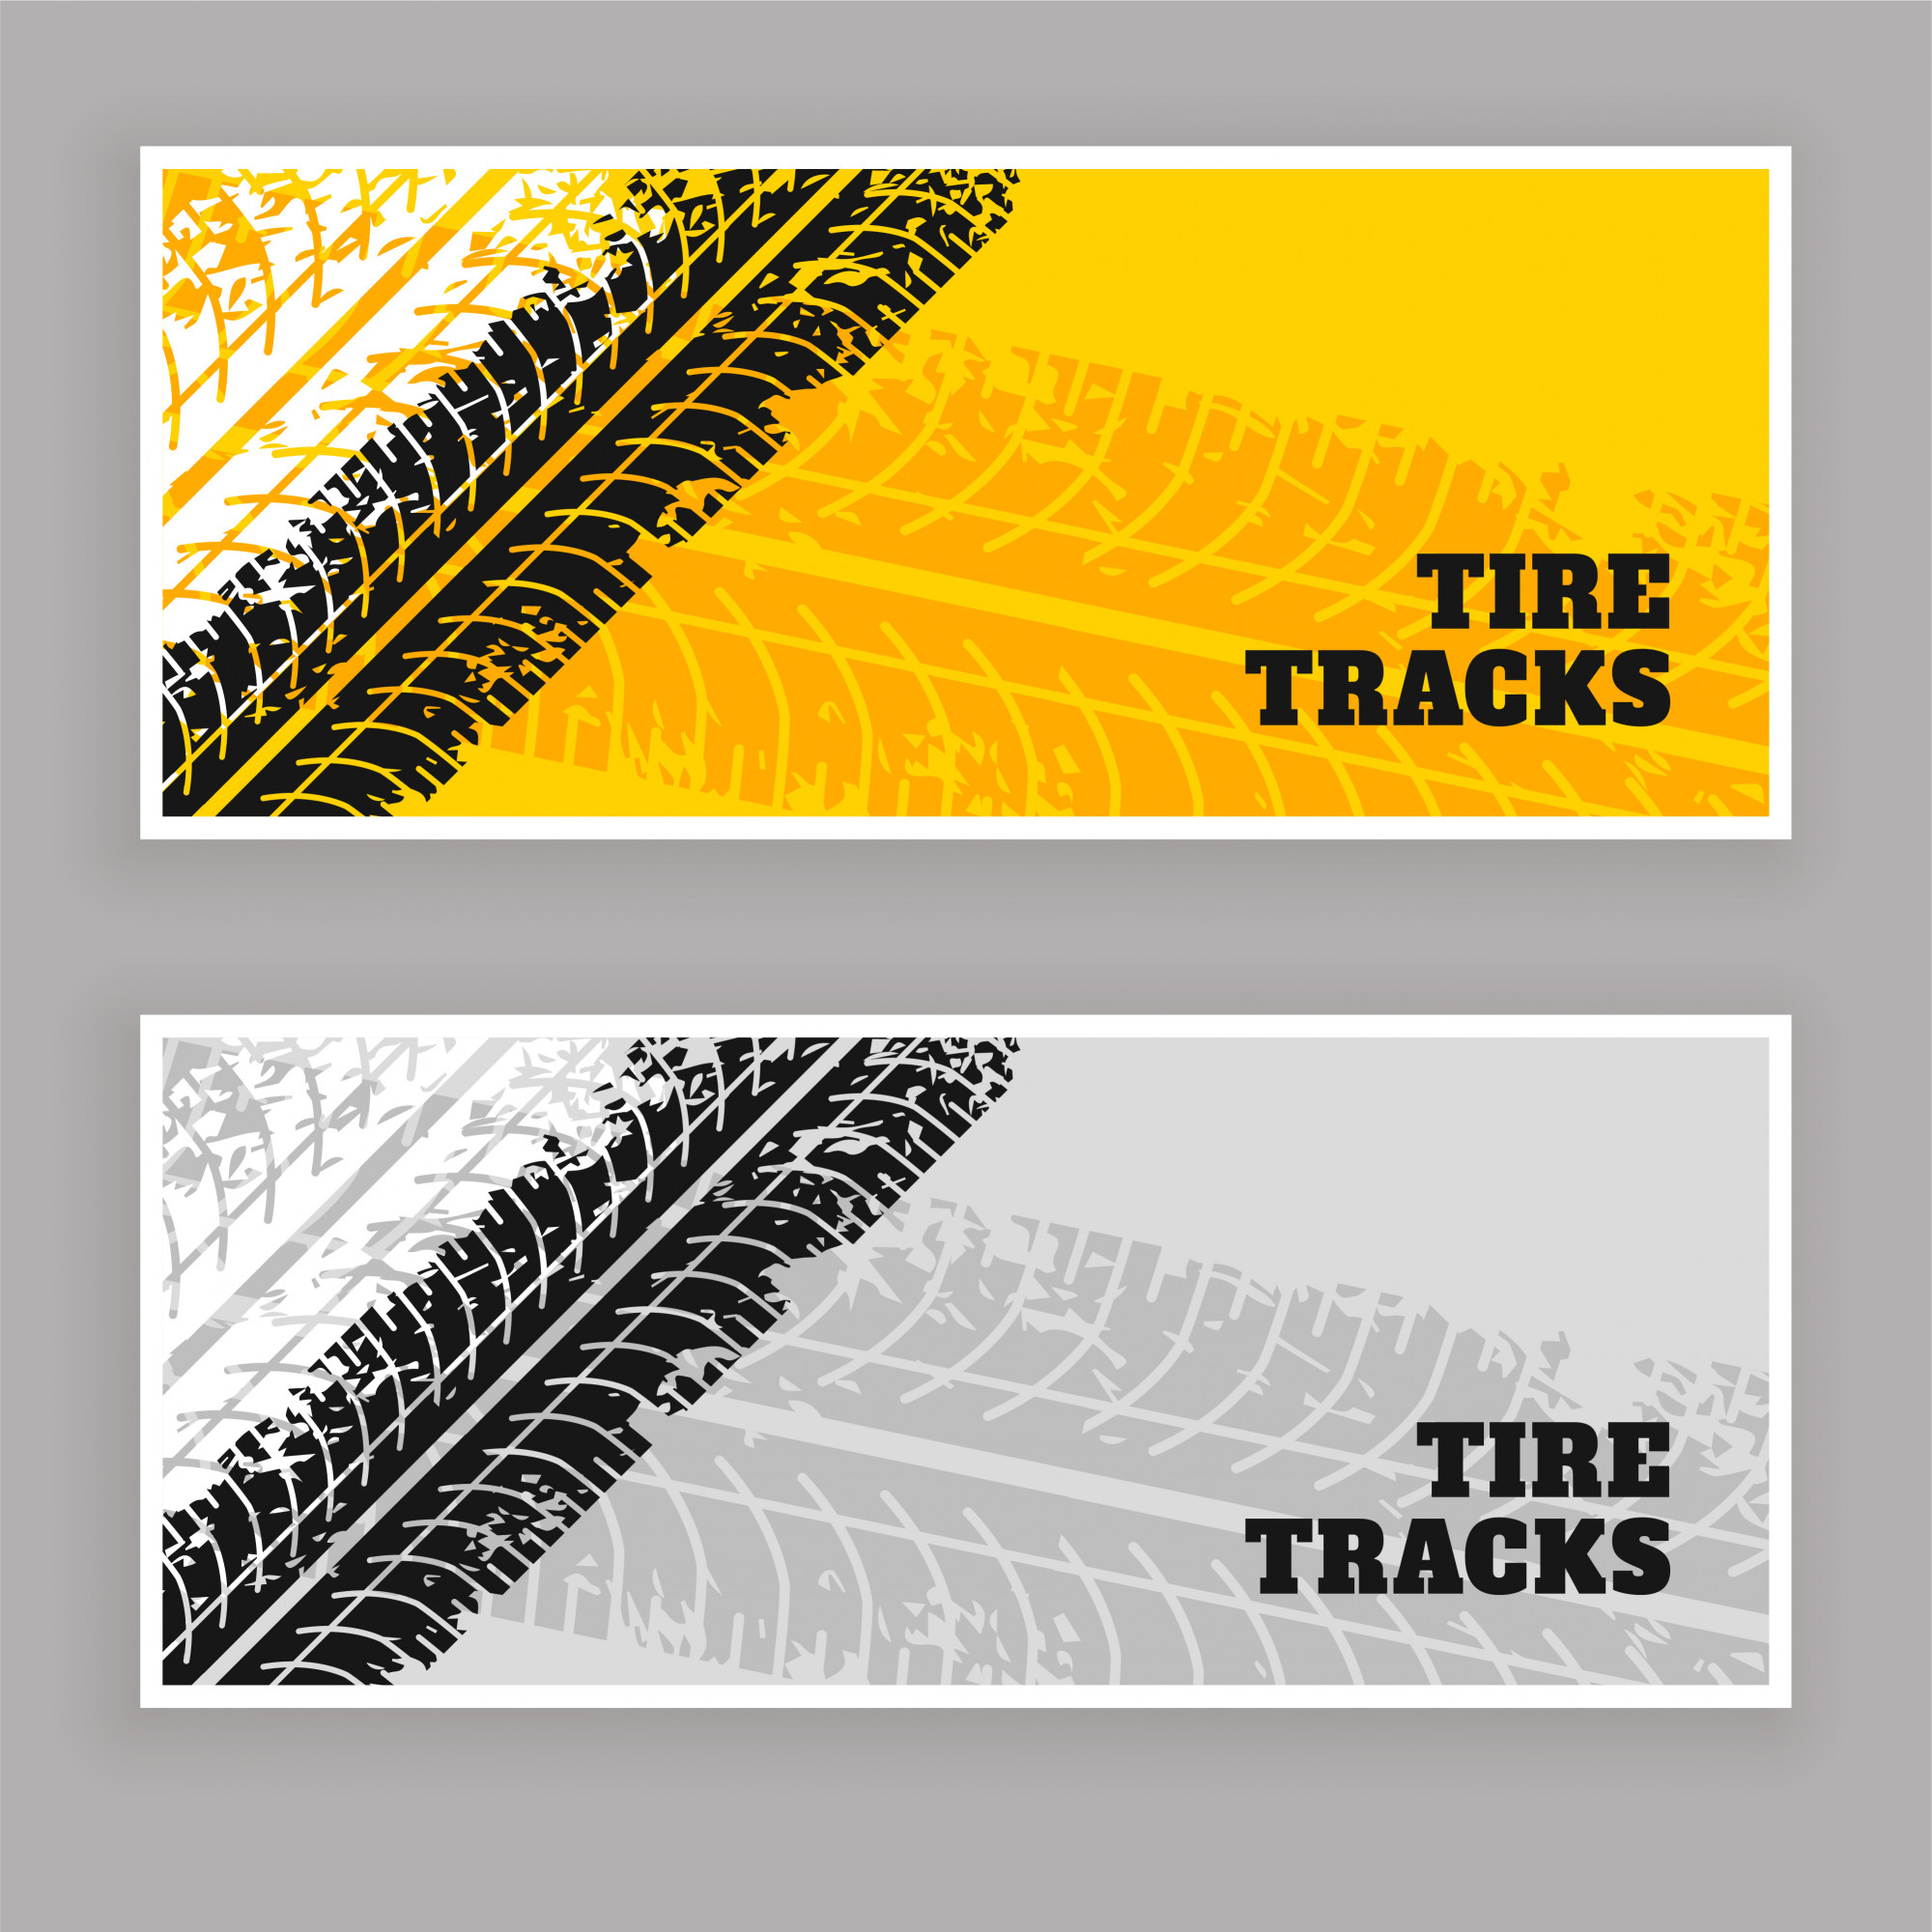 Tire tracks banners grunge background